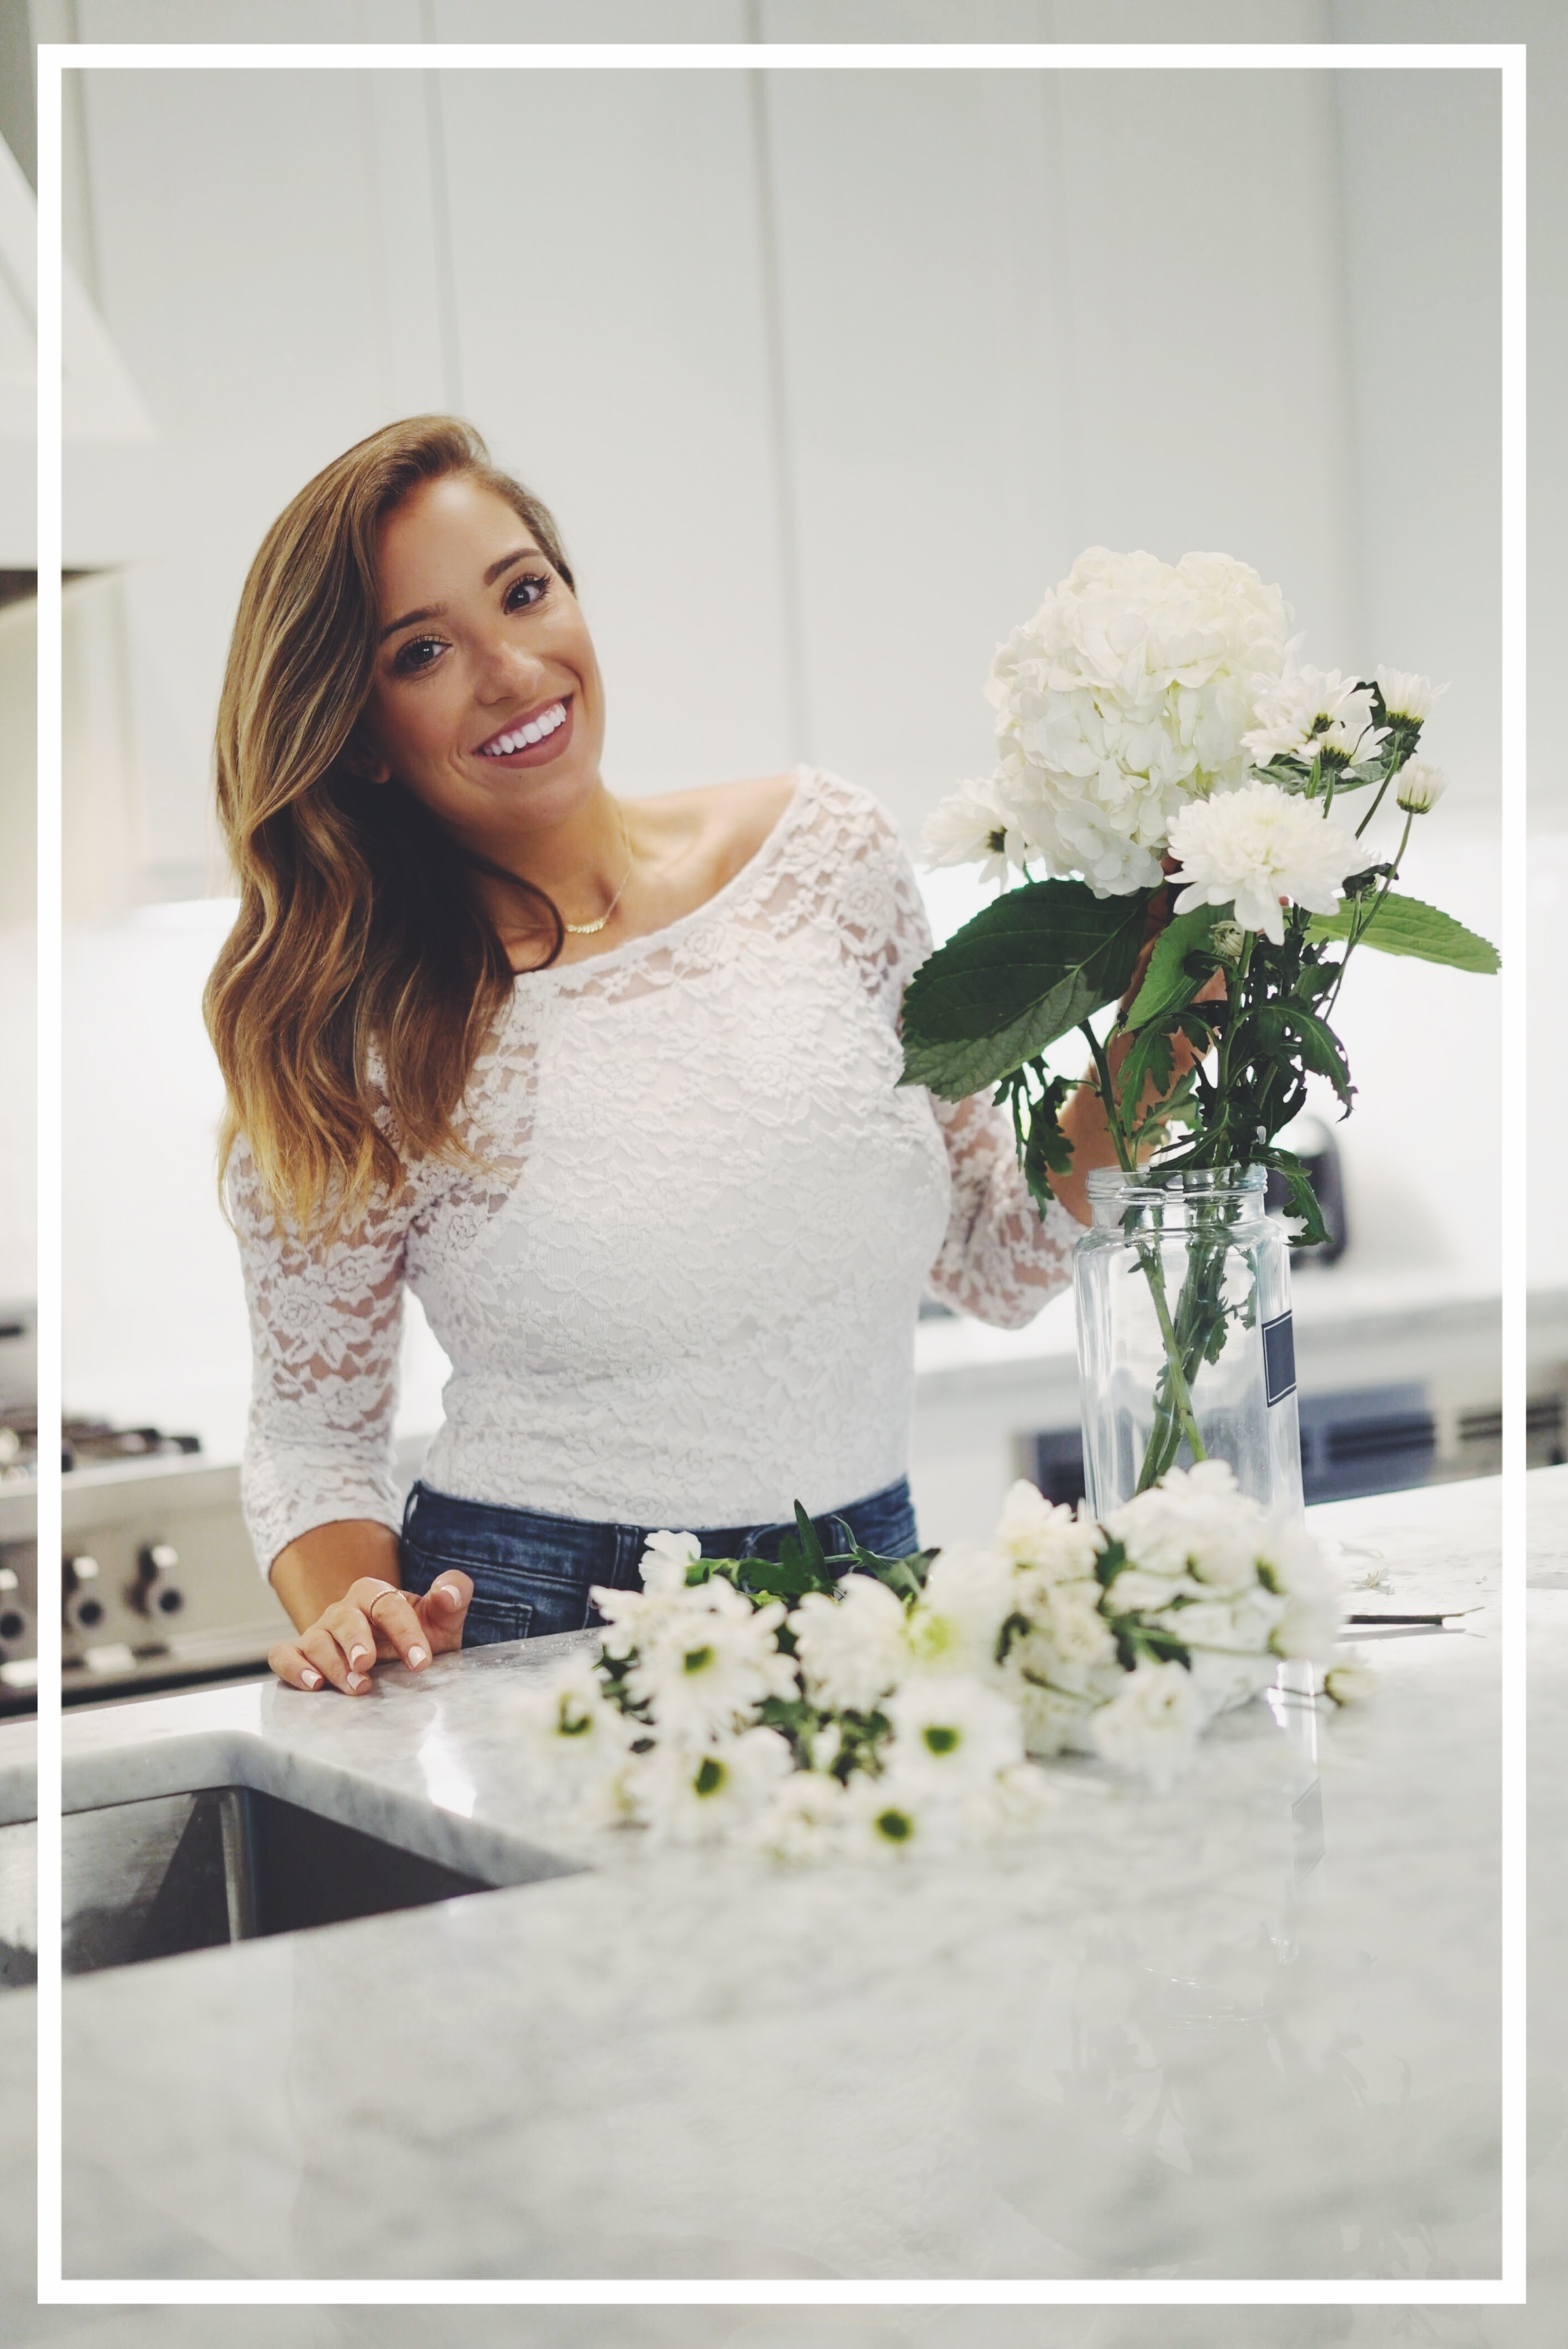 Hi! I'm Stefany. - I'm so glad you are here! This is a place that will hopefully leave you with some lifestyle inspiration to help you live your happiest, healthiest, best life! Here, you'll find a little bit of everything - my cookbook, health & wellness, gift guides, travel guides, workouts, home decor & more! I'm all about enjoyinglife - every little pretty inch of it.I have a background in social media & marketing - which is probably wear my creativity & love for creating comes from! I'm also a certified personal trainer, and have a huge passion for living an active, healthy lifestyle. If I'm not in kitchen or gym - you'll most likely find me in Home Goods! (I'm serious) I'm all about making life